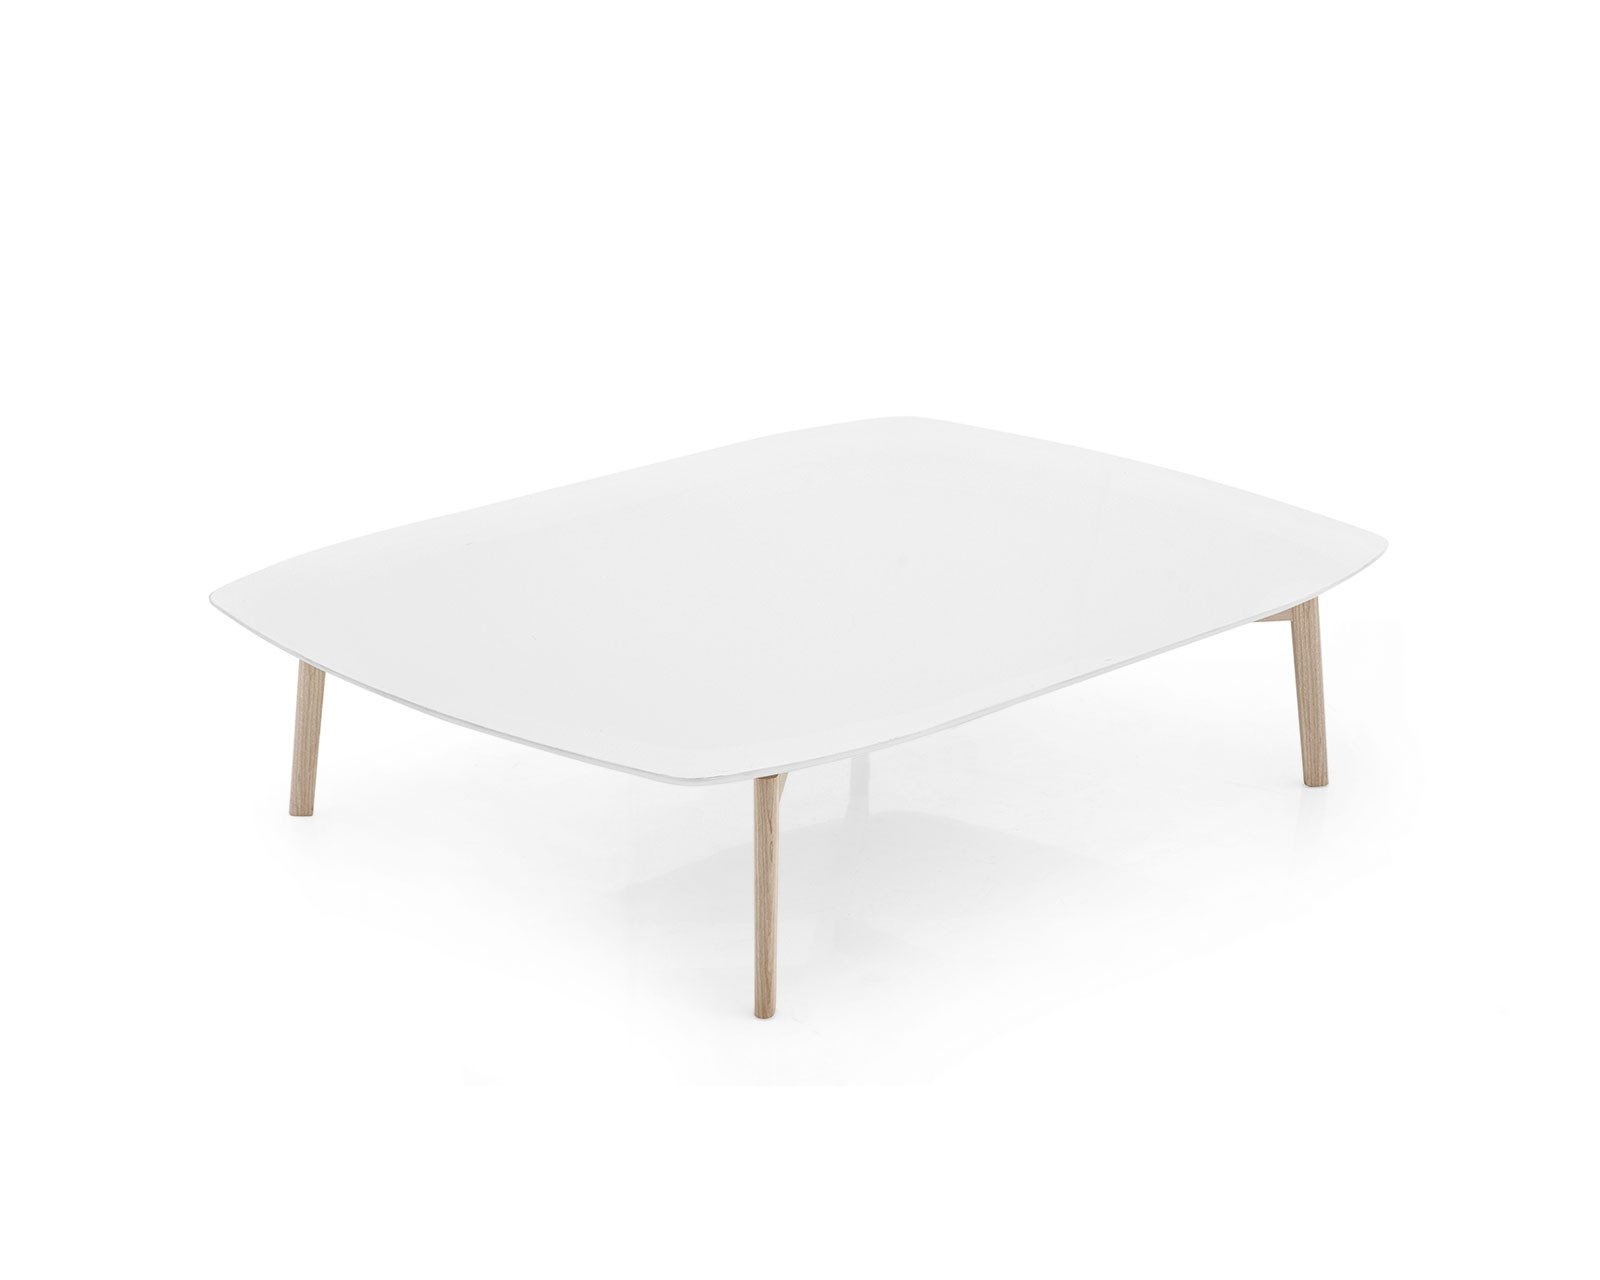 the contemporary match coffee table smoke made calligaris furniture austin white natural accent tables five elements used patio beach style living room small mosaic outdoor side